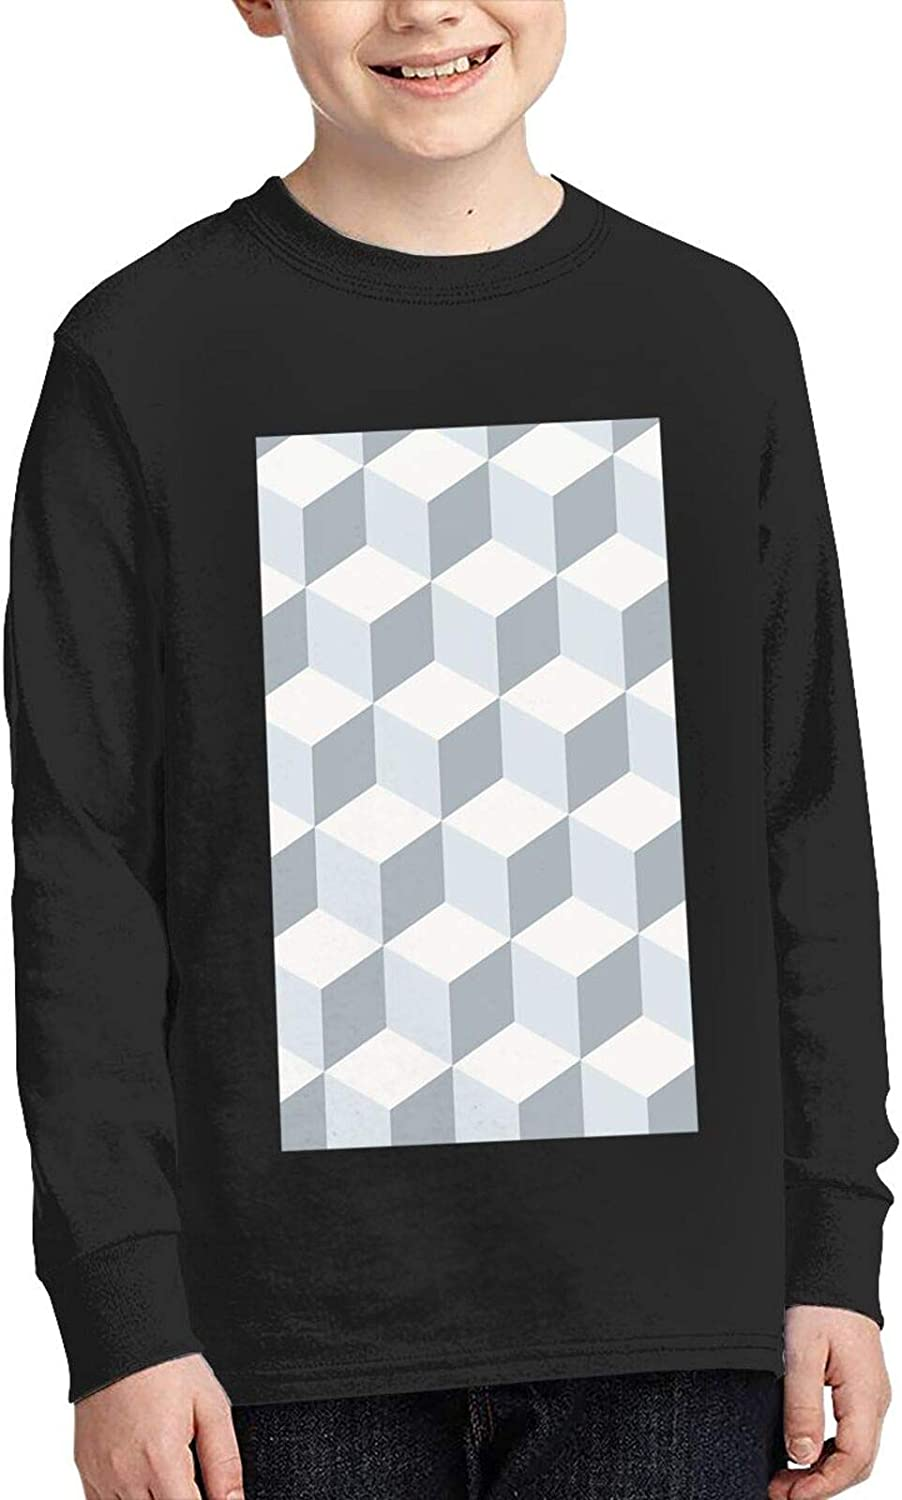 Square Three Dimensional Ladder Sweater Fashion and Comfortable Children's Sweater